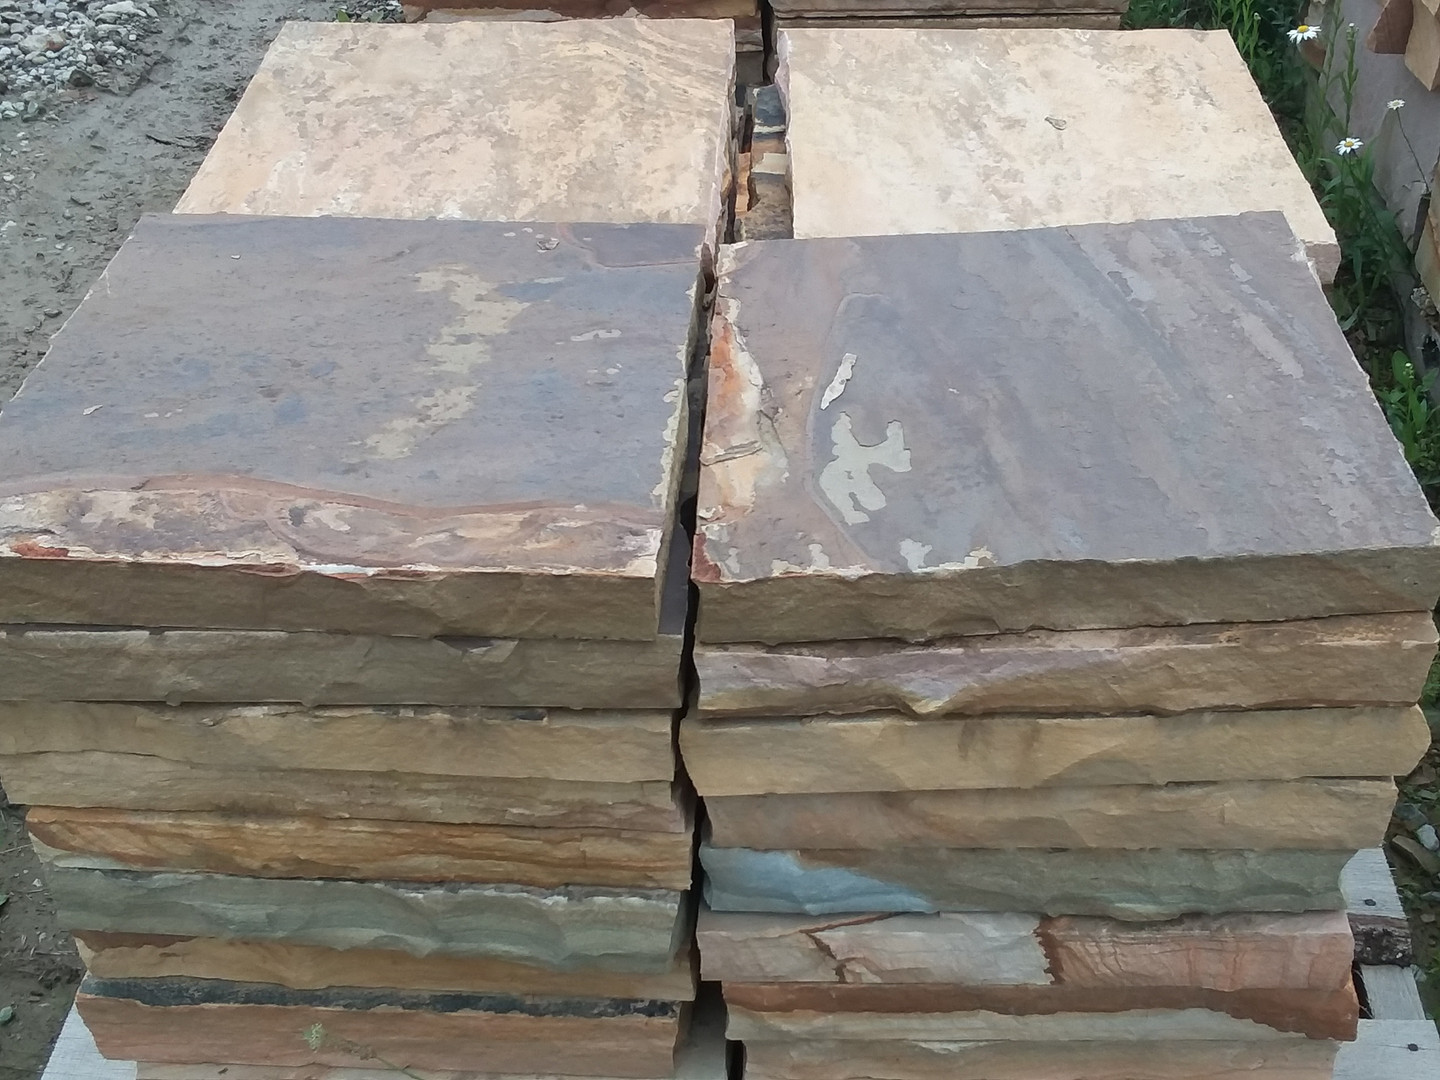 Brown 18 x 18 stepping stones